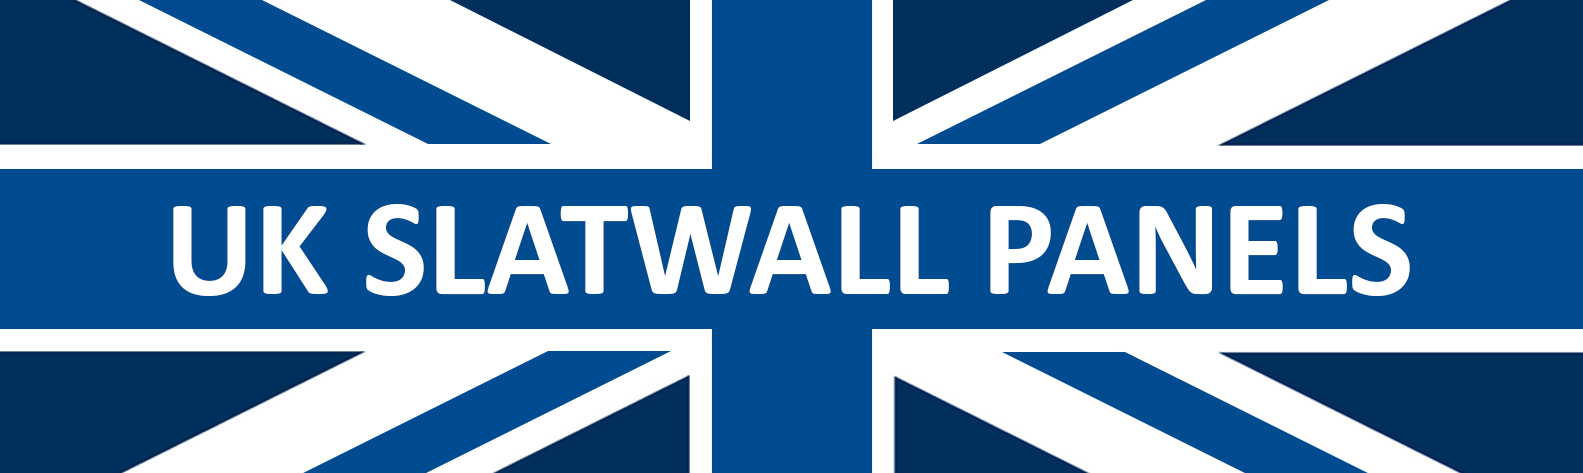 UK Slatwall Panels - 4ft Slatwall